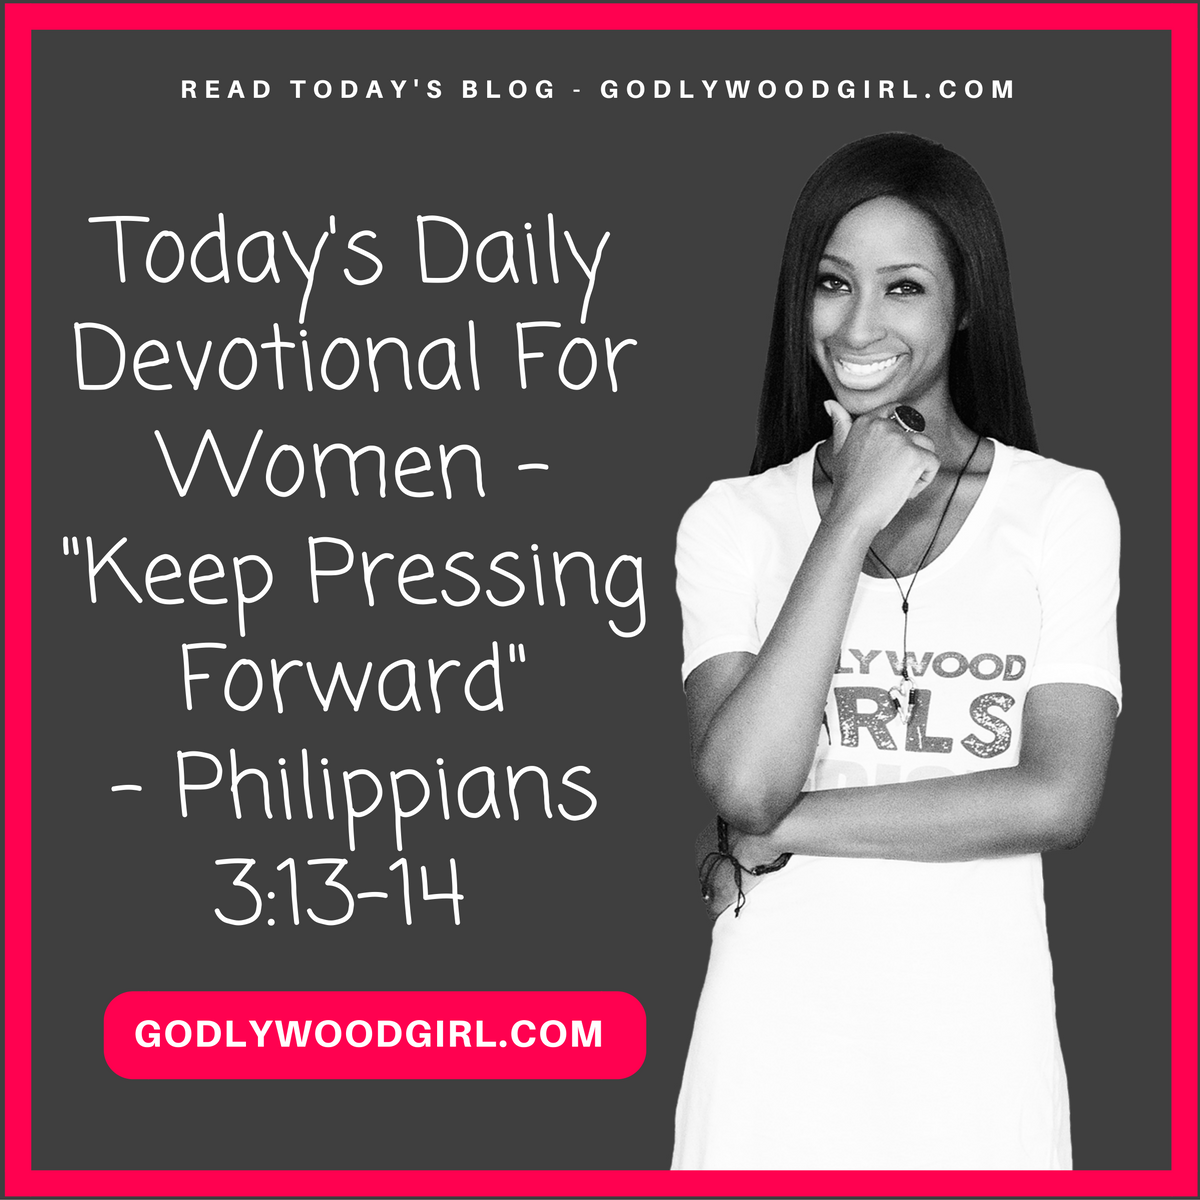 Today's Daily Devotional For Women - Keep Pressing Forward